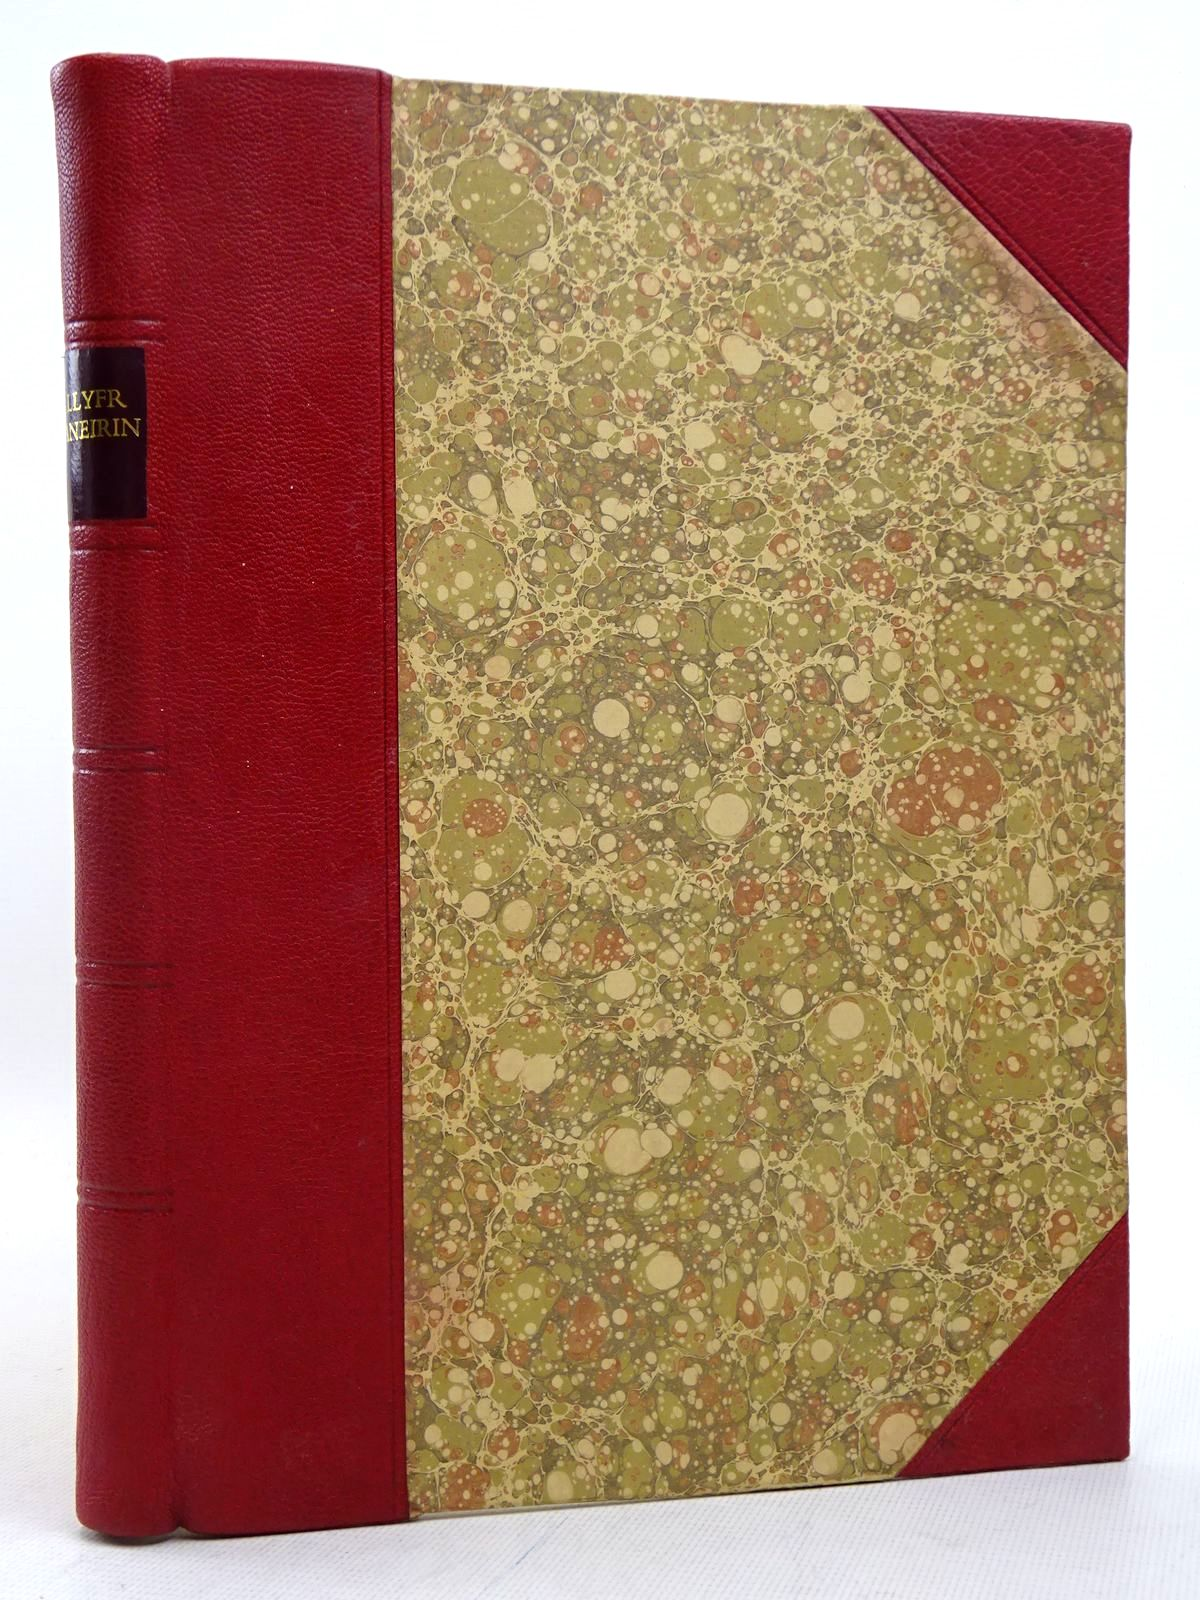 Photo of LLYFR ANEIRIN: A FACSIMILE written by Aneirin, Llyfr Evans, J. Gwenogvryn Huws, Daniel published by The National Library of Wales (STOCK CODE: 1817233)  for sale by Stella & Rose's Books